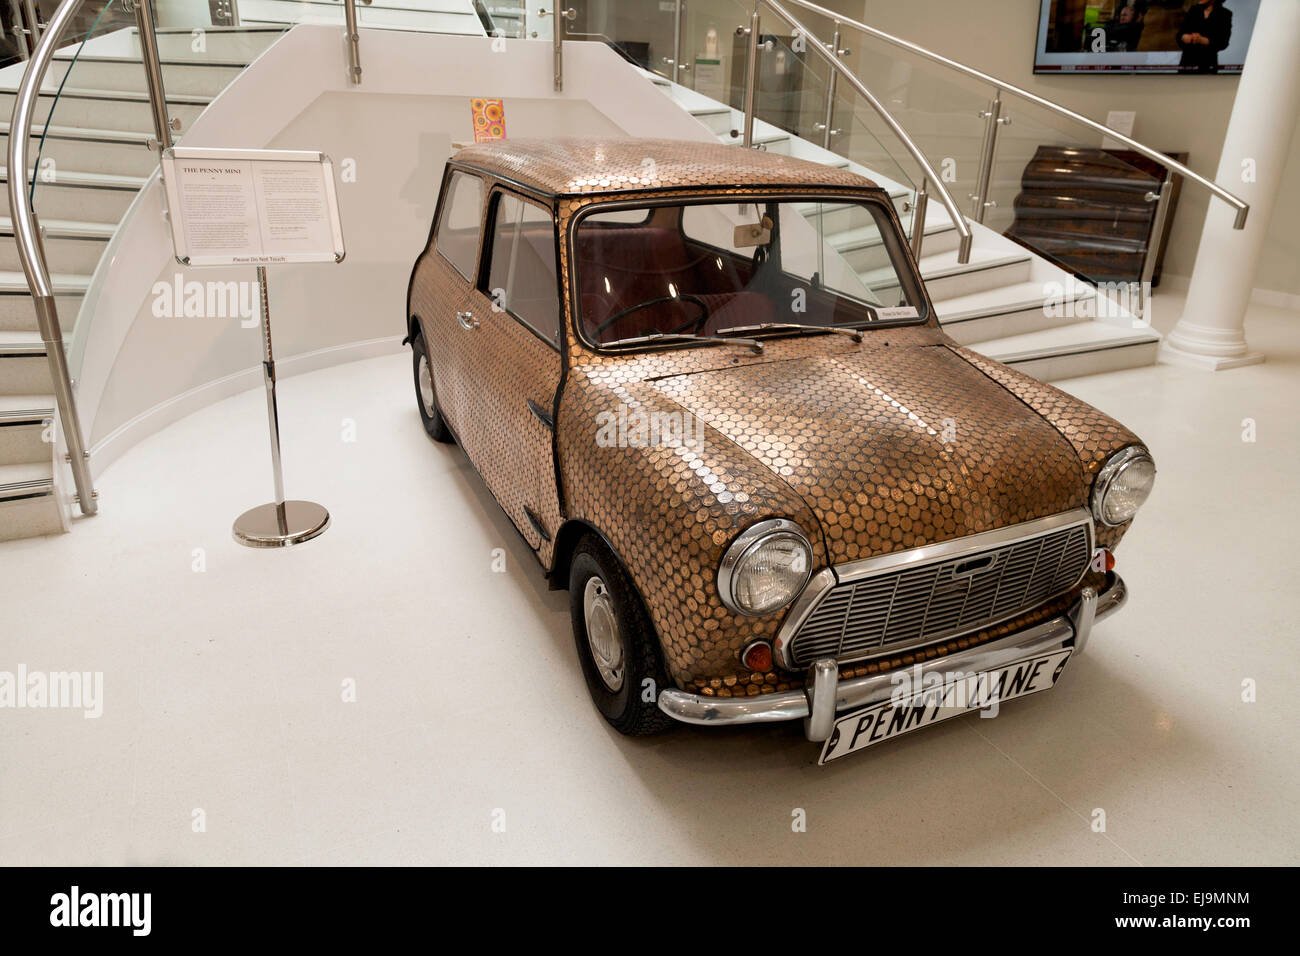 """ Penny Mini "" car, covered with old pennies, possibly linked to the Beatles song "" Penny Lane"",  for sale at auction, Stock Photo"